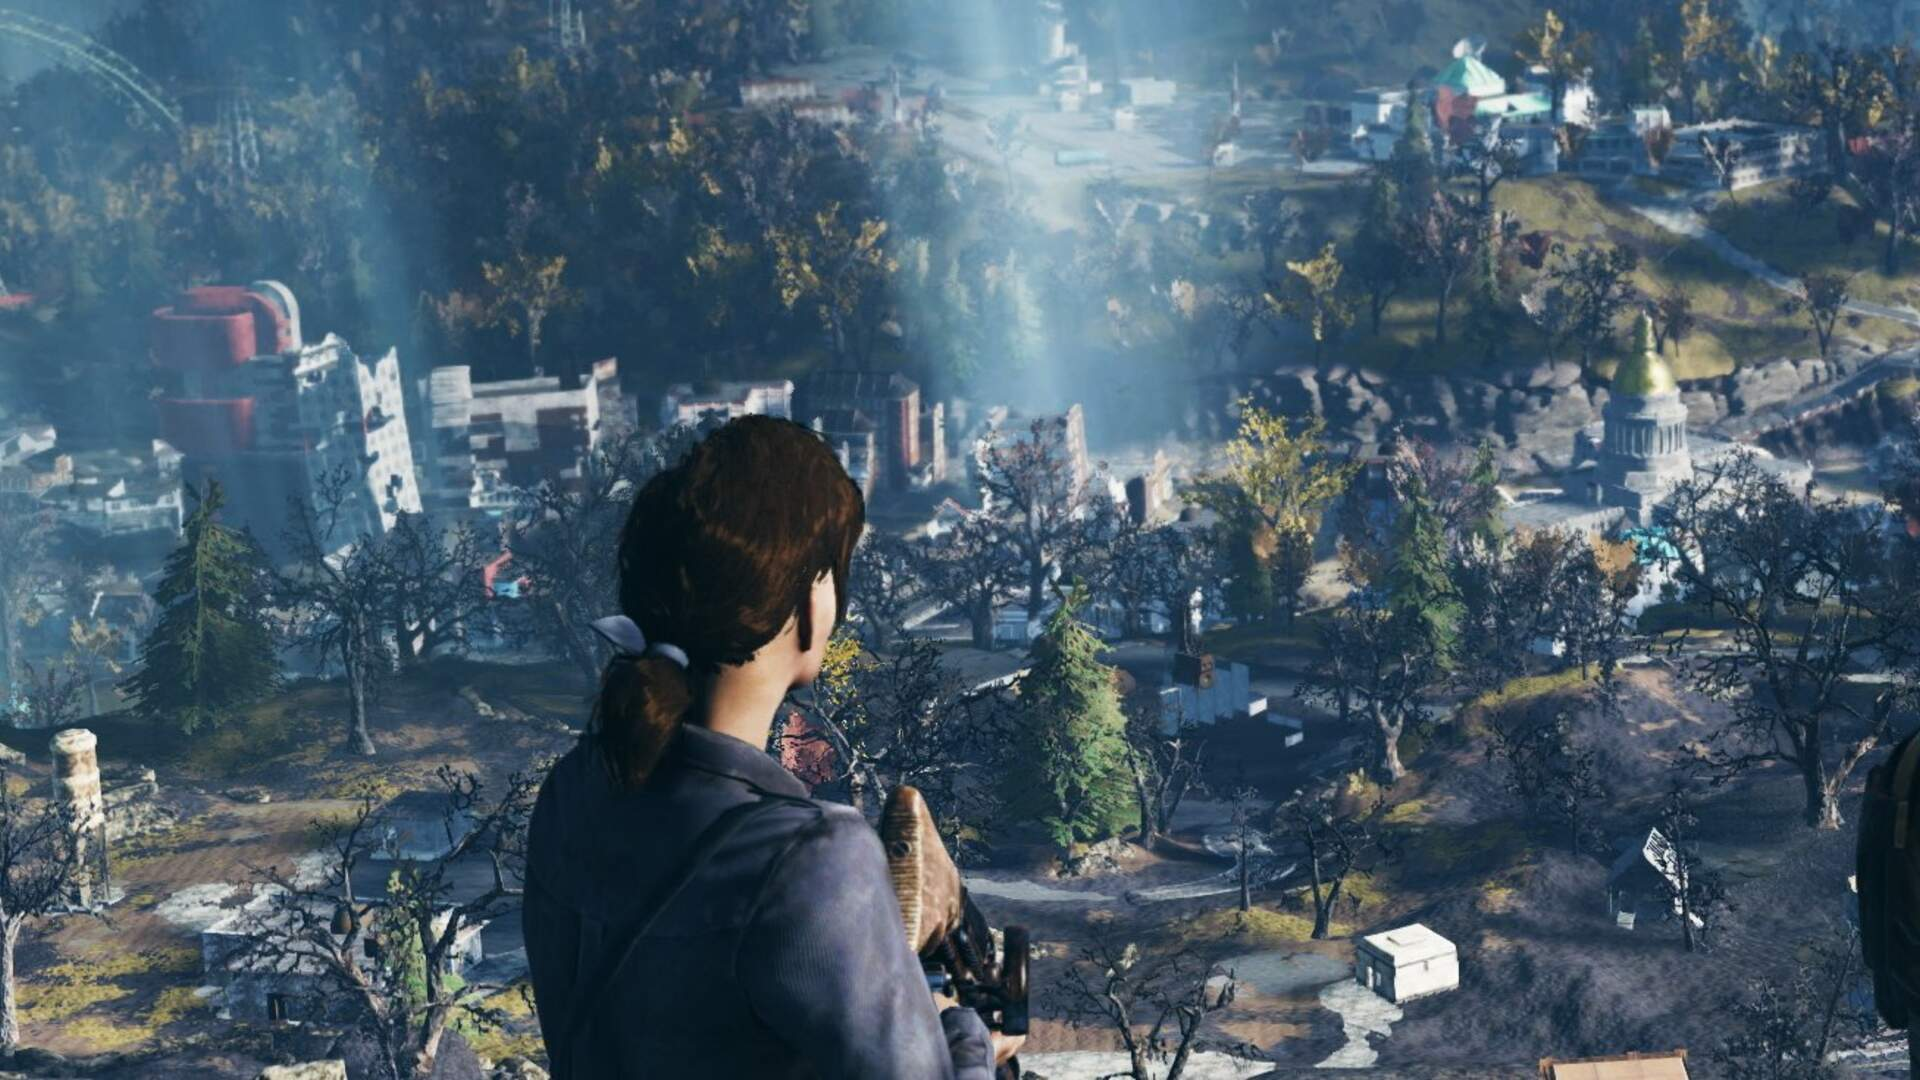 Fallout 76 Digital Sales Down Nearly 50 Percent Compared to Fallout 4's Launch